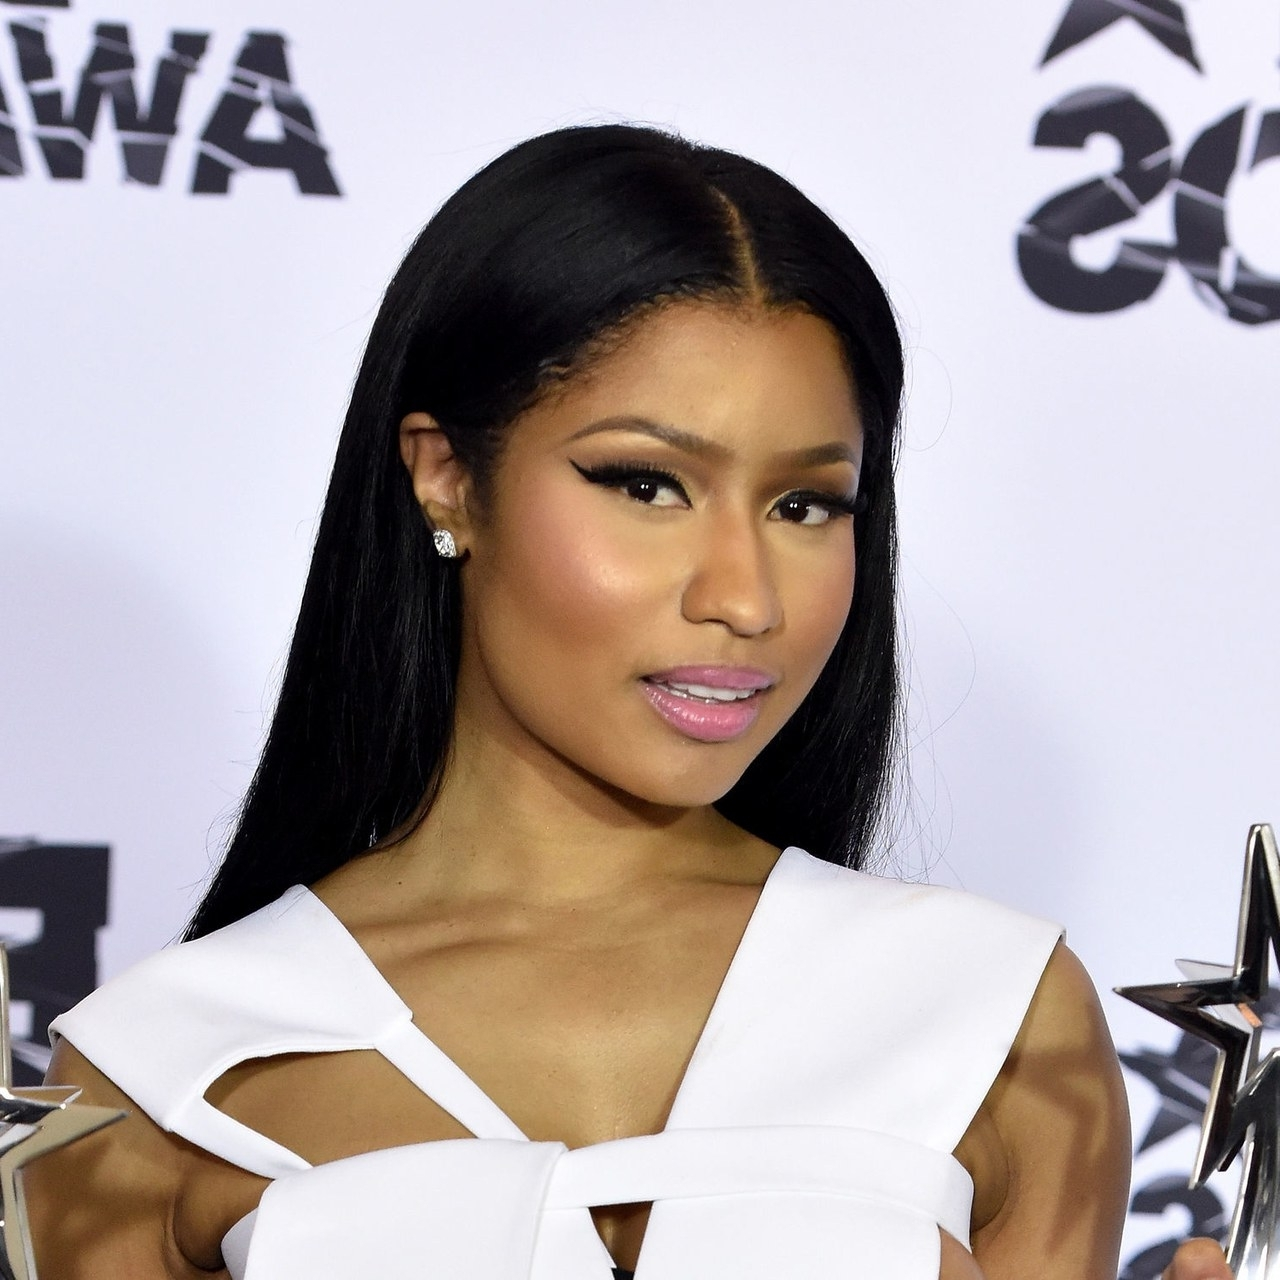 Makeup Trend: Nicki Minaj, Monica, Cassie Wear Cat Eyeliner At The In Most Recent Minaj Pony Hairstyles With Arched Bangs (Gallery 7 of 20)